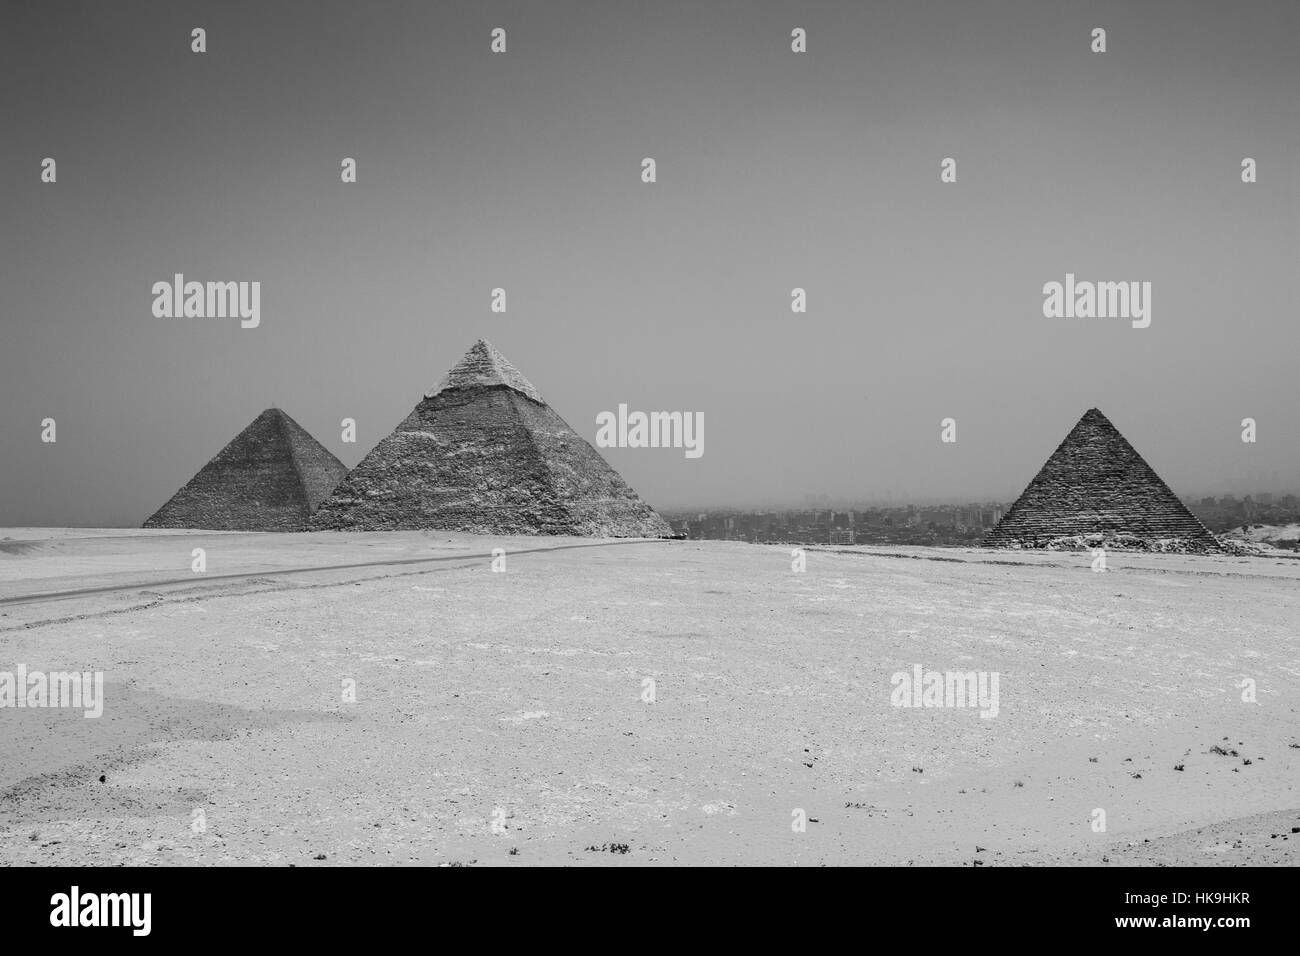 The Great Pyramids of Giza in Cairo, Egypt Stock Photo